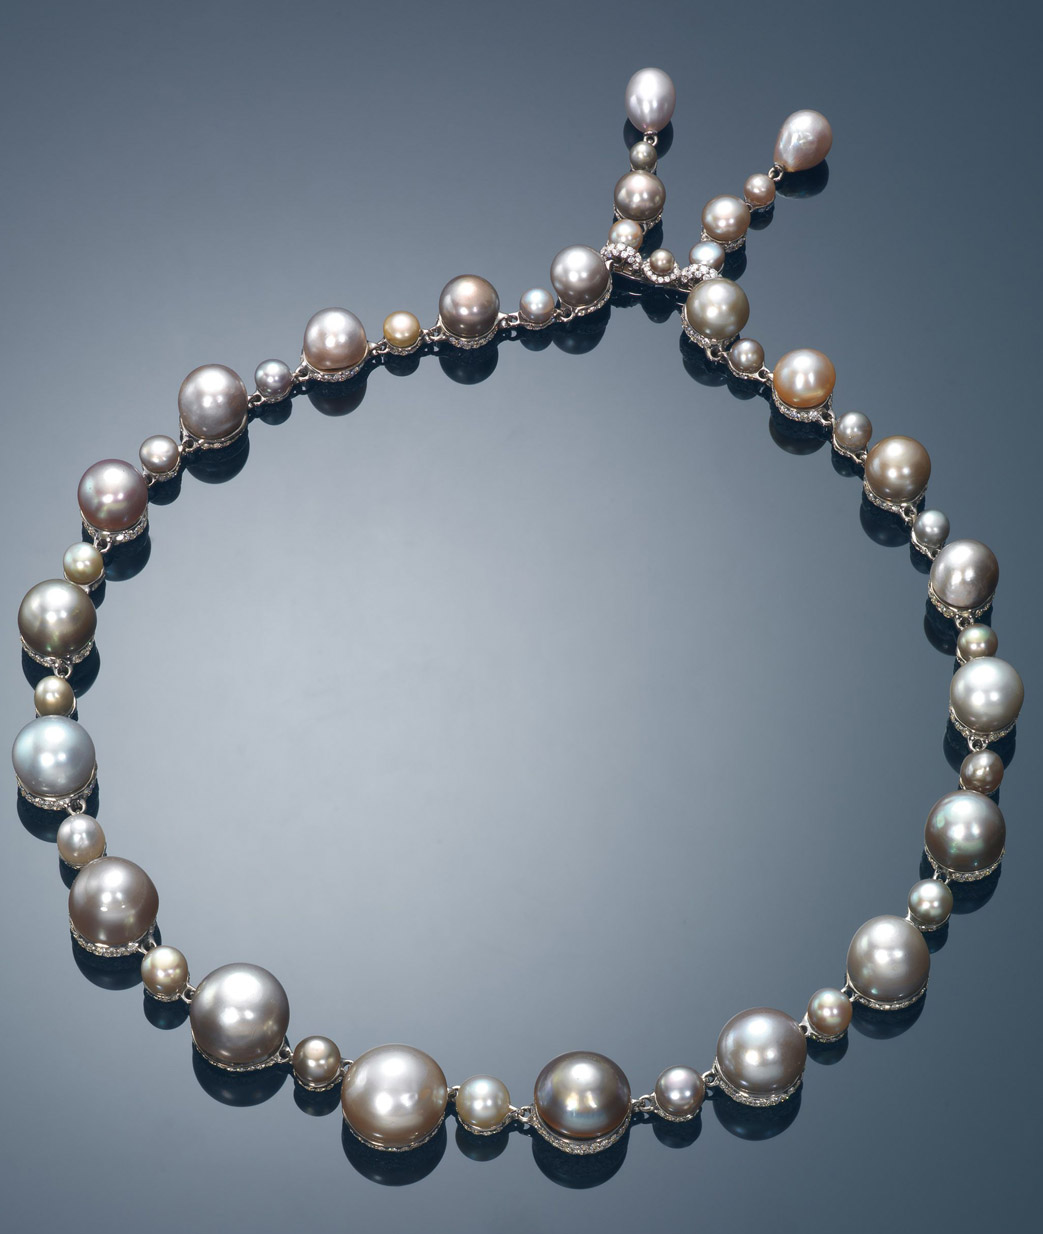 Necklace With A Pearl: Jewelry News Network: 'Pigeon's Blood' Ruby Necklace Leads